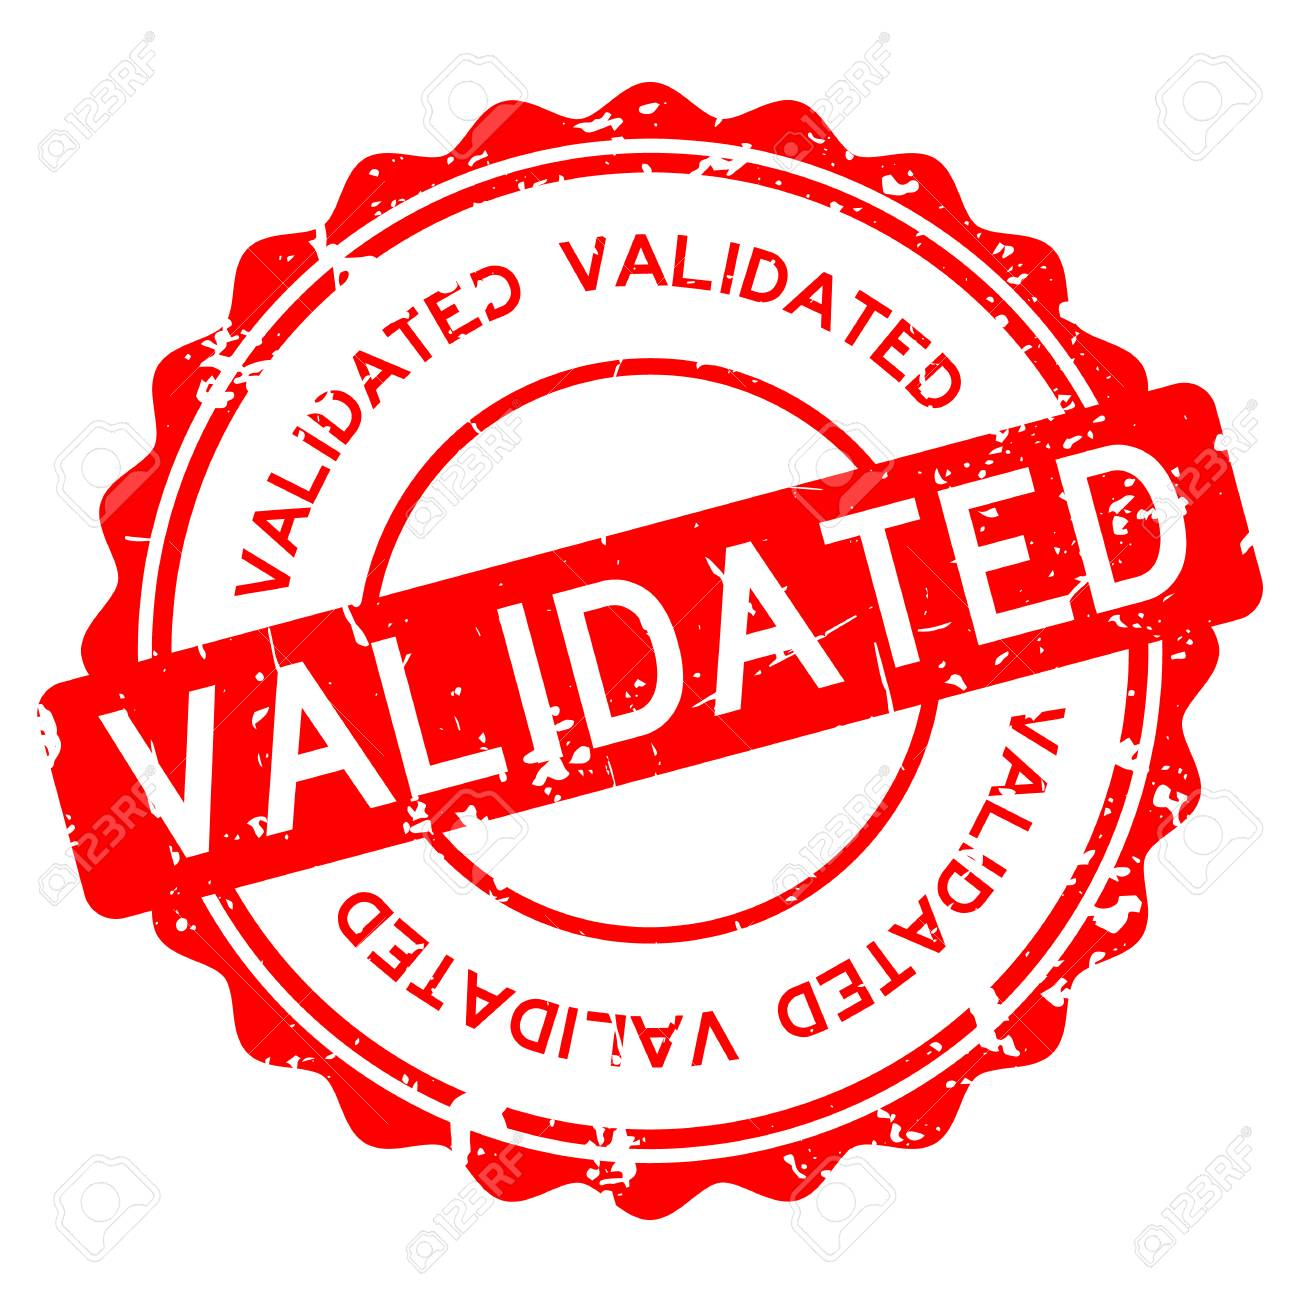 Grunge Red Validated Wording Round Rubber Seal Stamp On White Background Stock Vector